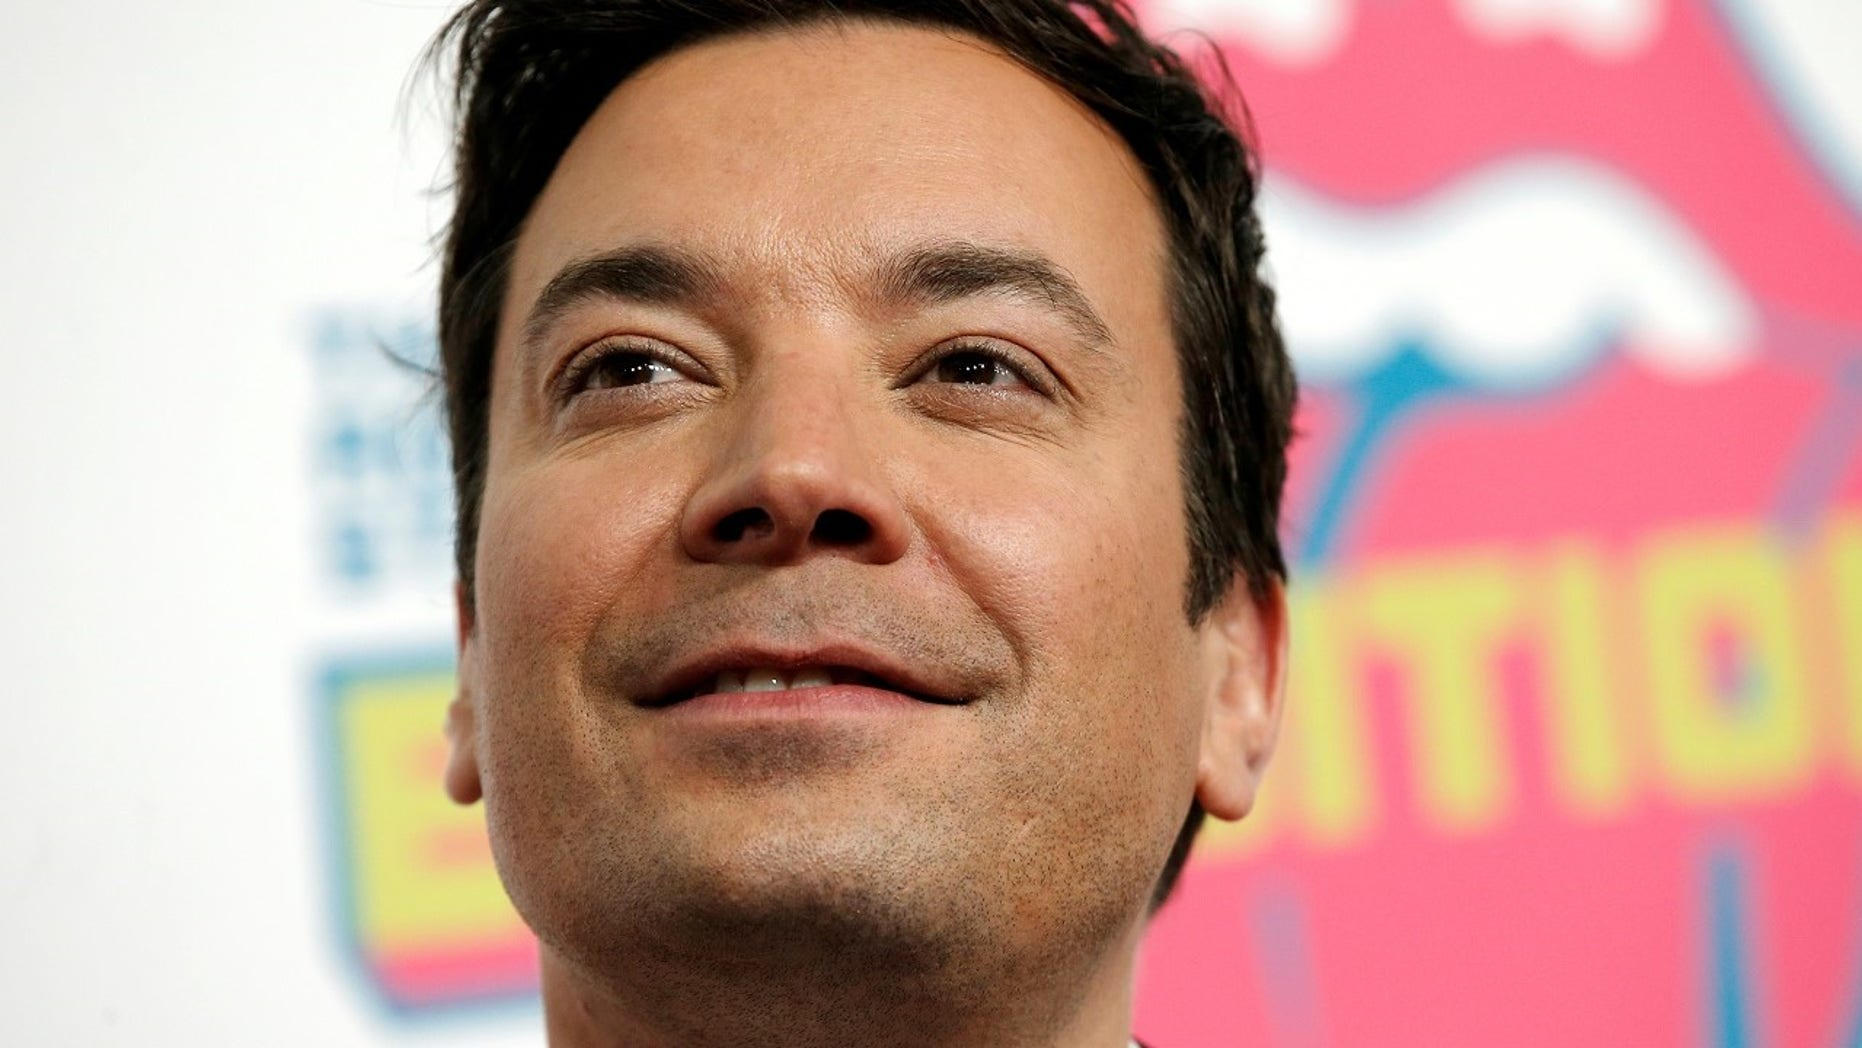 Jimmy Fallon paid tribute to his late mother Gloria Fallon during Monday night's show.